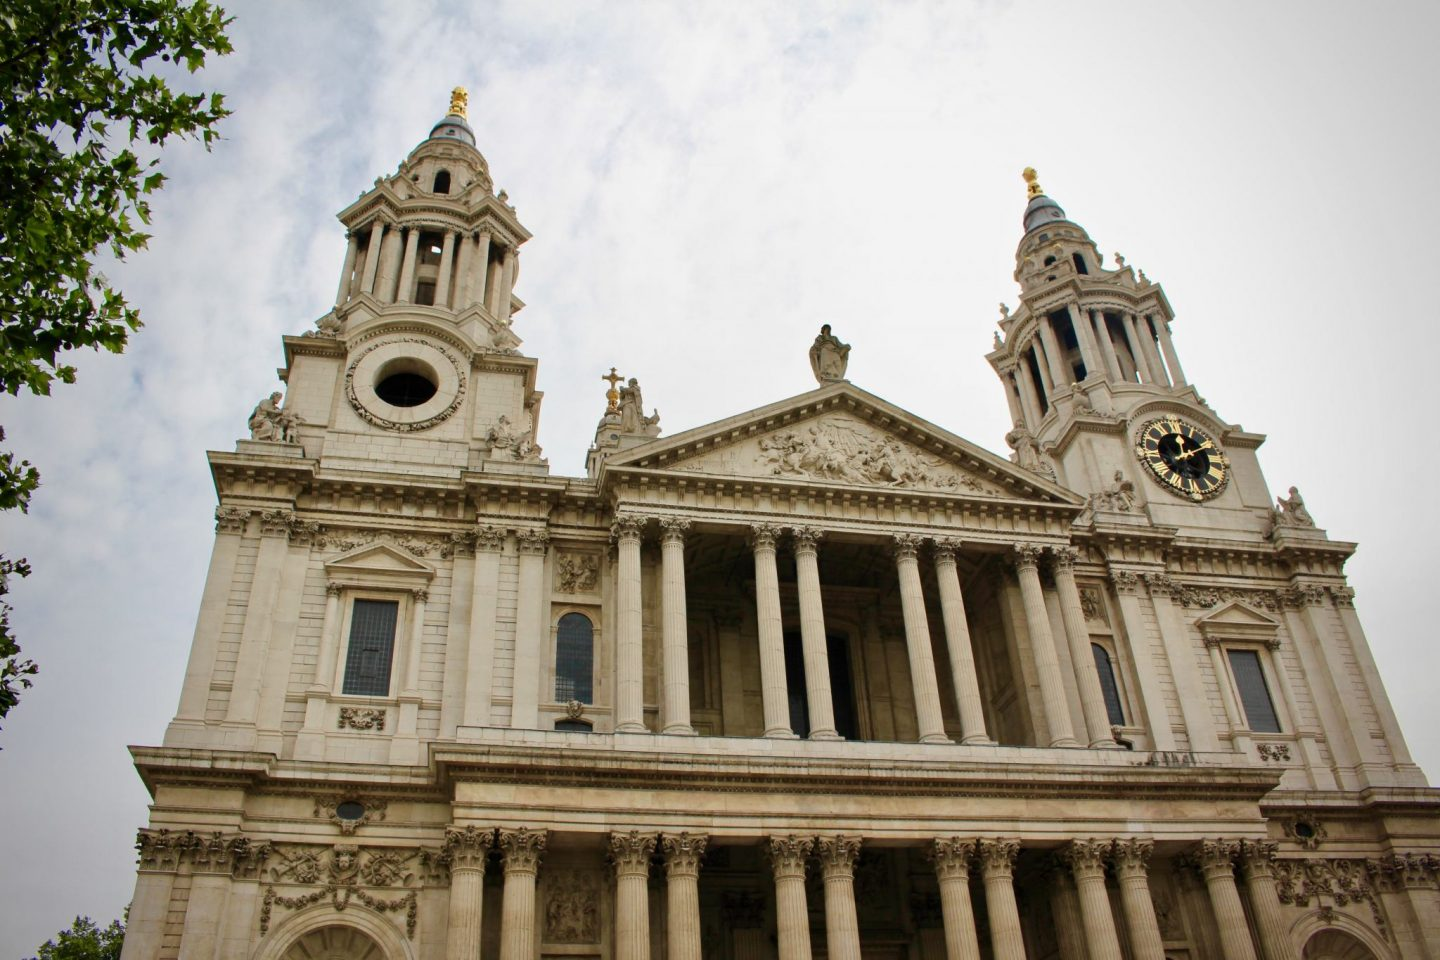 St. Paul's London UK | Visiting St. Paul's Cathedral | The Spectacular Adventurer